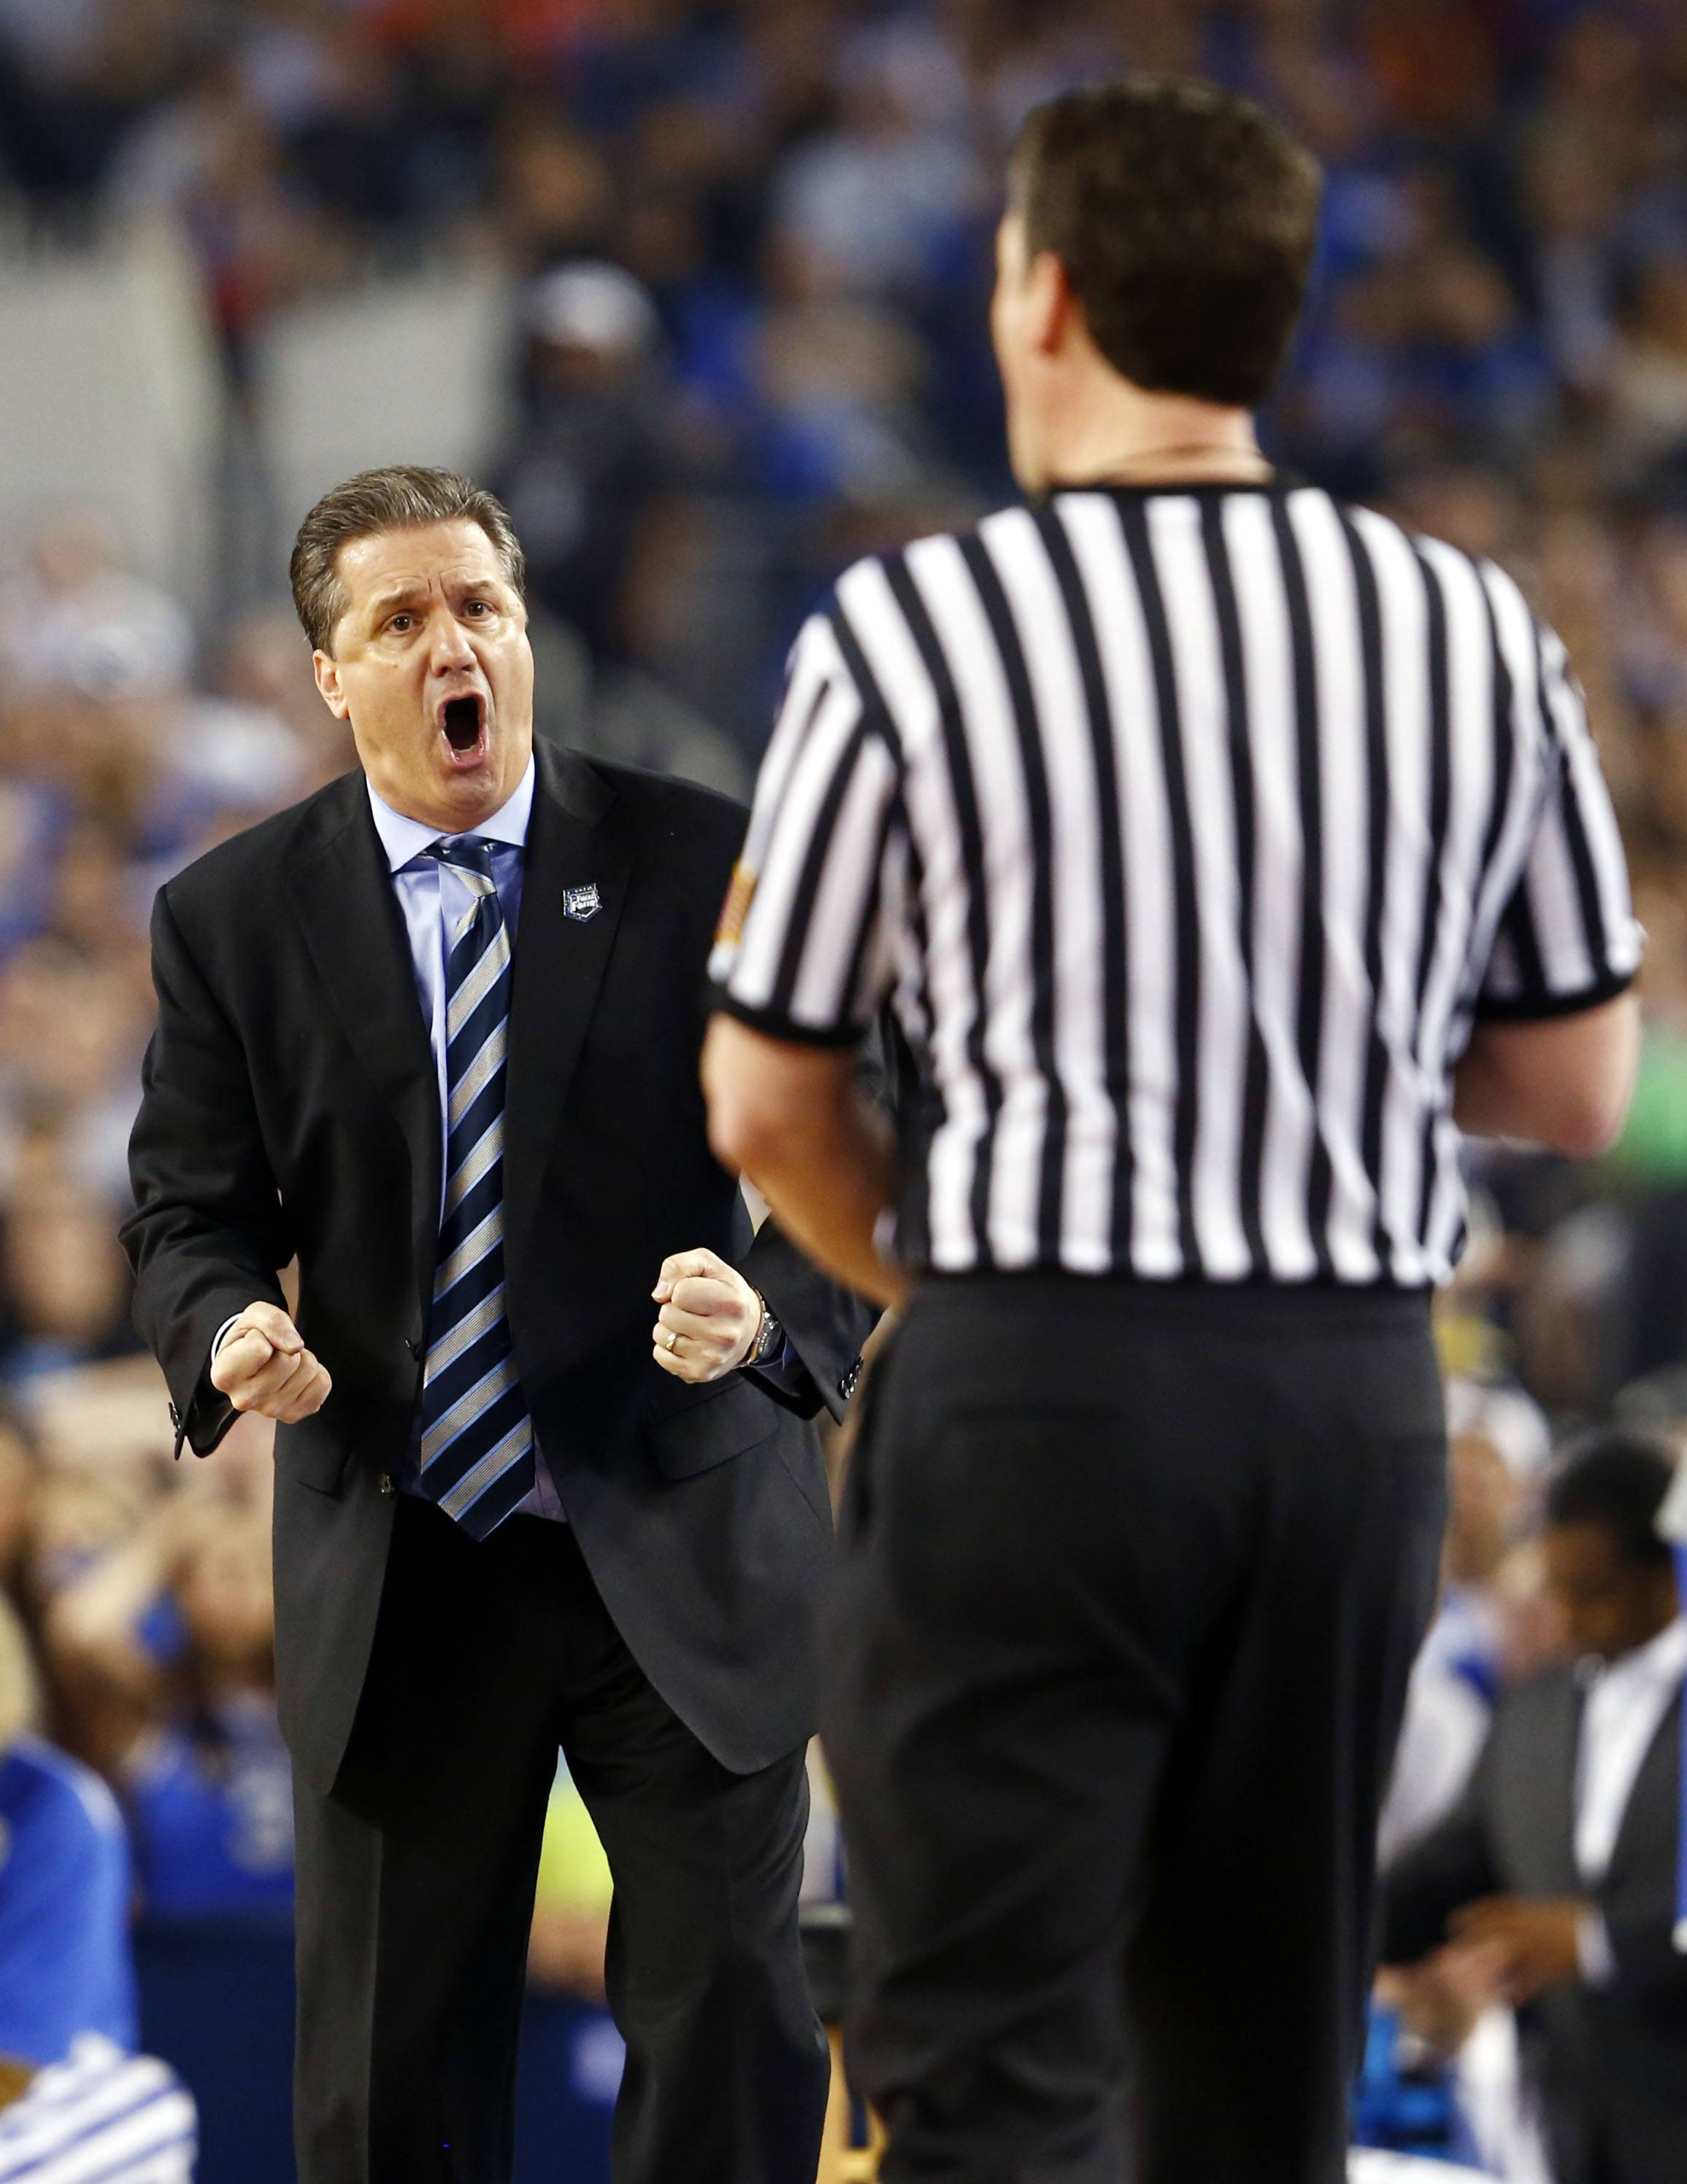 Kentucky head coach John Calipari argues with an official during the second half of the NCAA title game Monday at AT&T Stadium in Arlington, Texas.